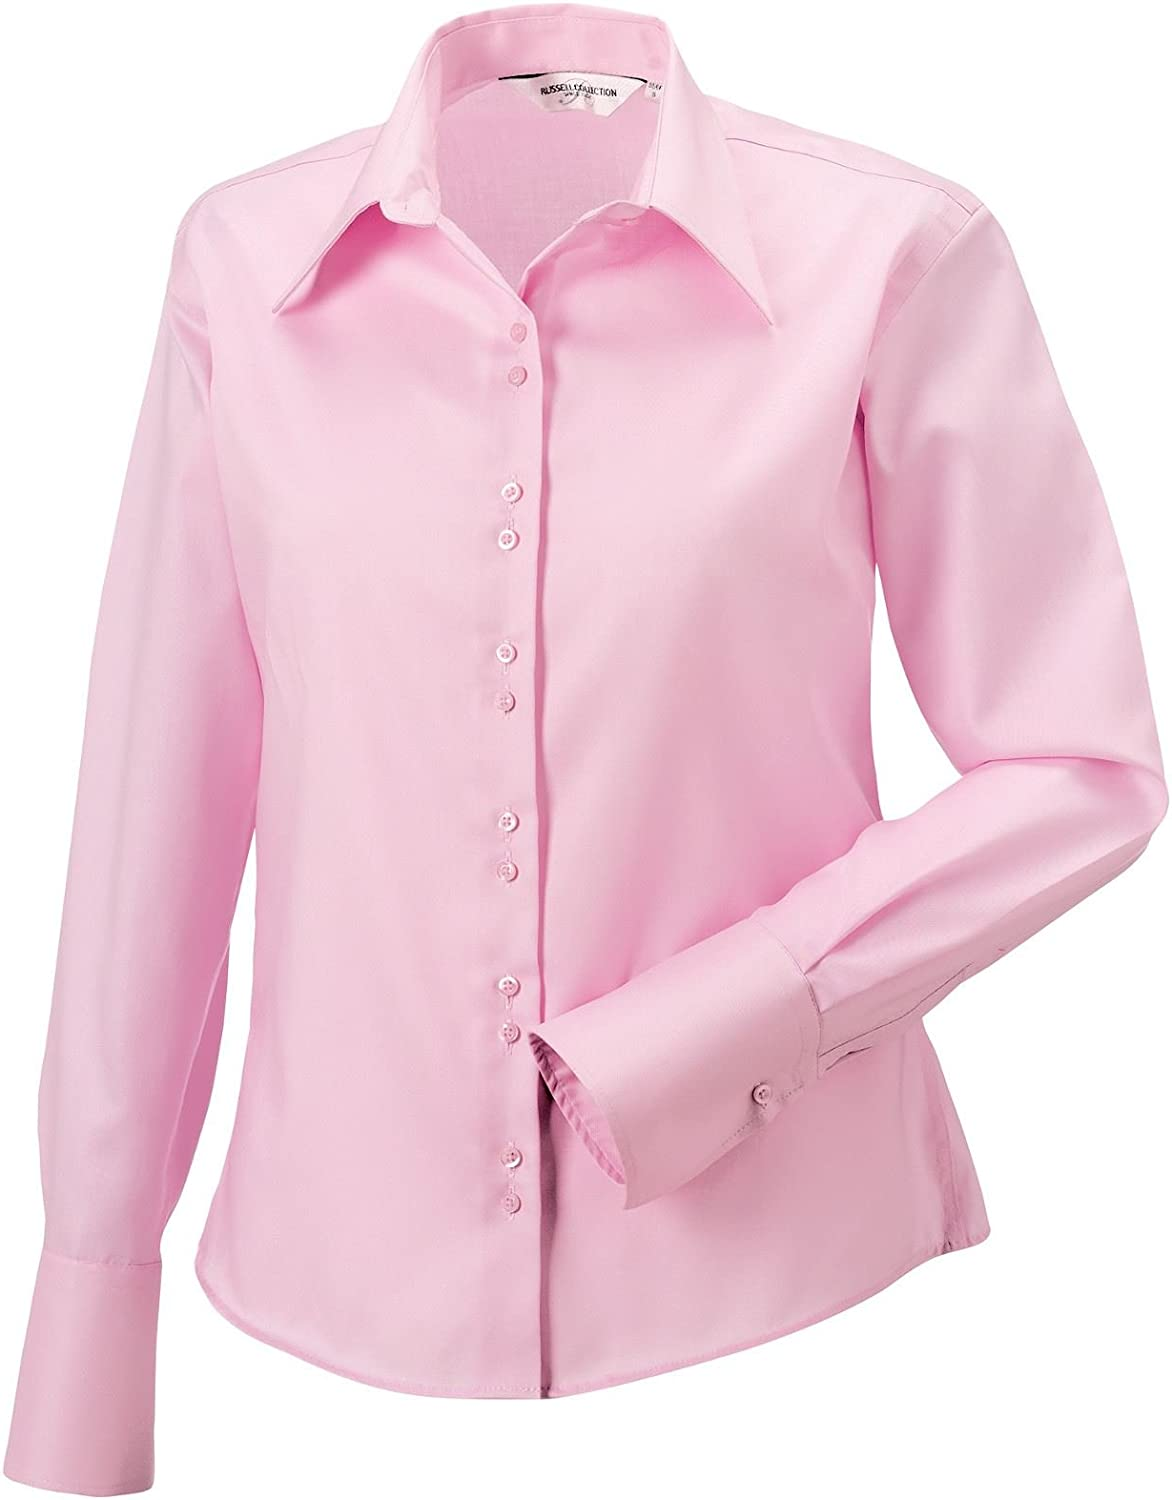 Russell Collection camisa manga larga Non Iron 956 F Classic Pink L/14: Amazon.es: Ropa y accesorios